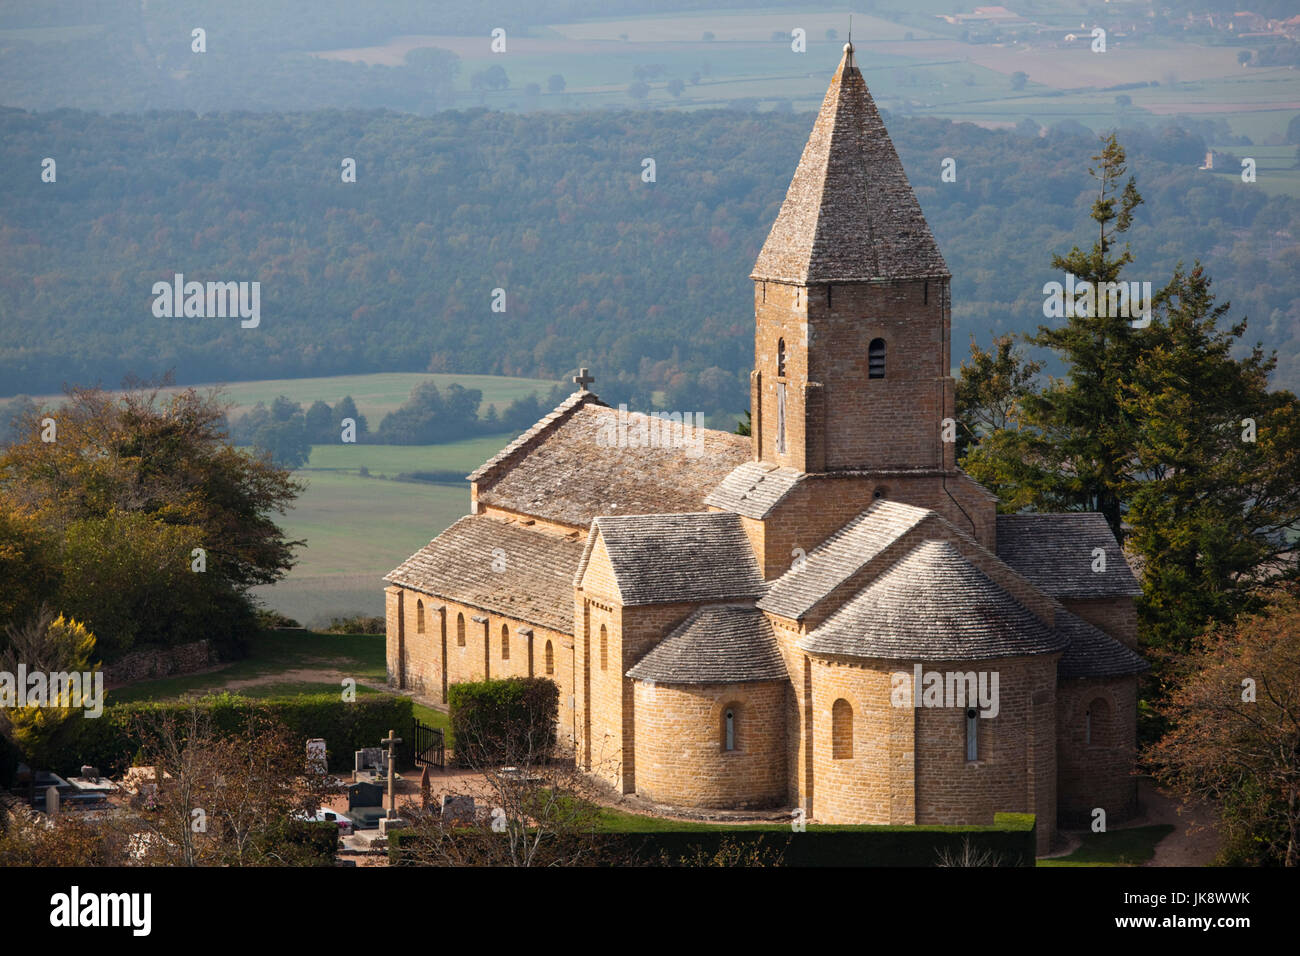 France, Saone-et-Loire Department, Burgundy Region, Maconnais Area, Brancion, Eglise St-Pierre church - Stock Image